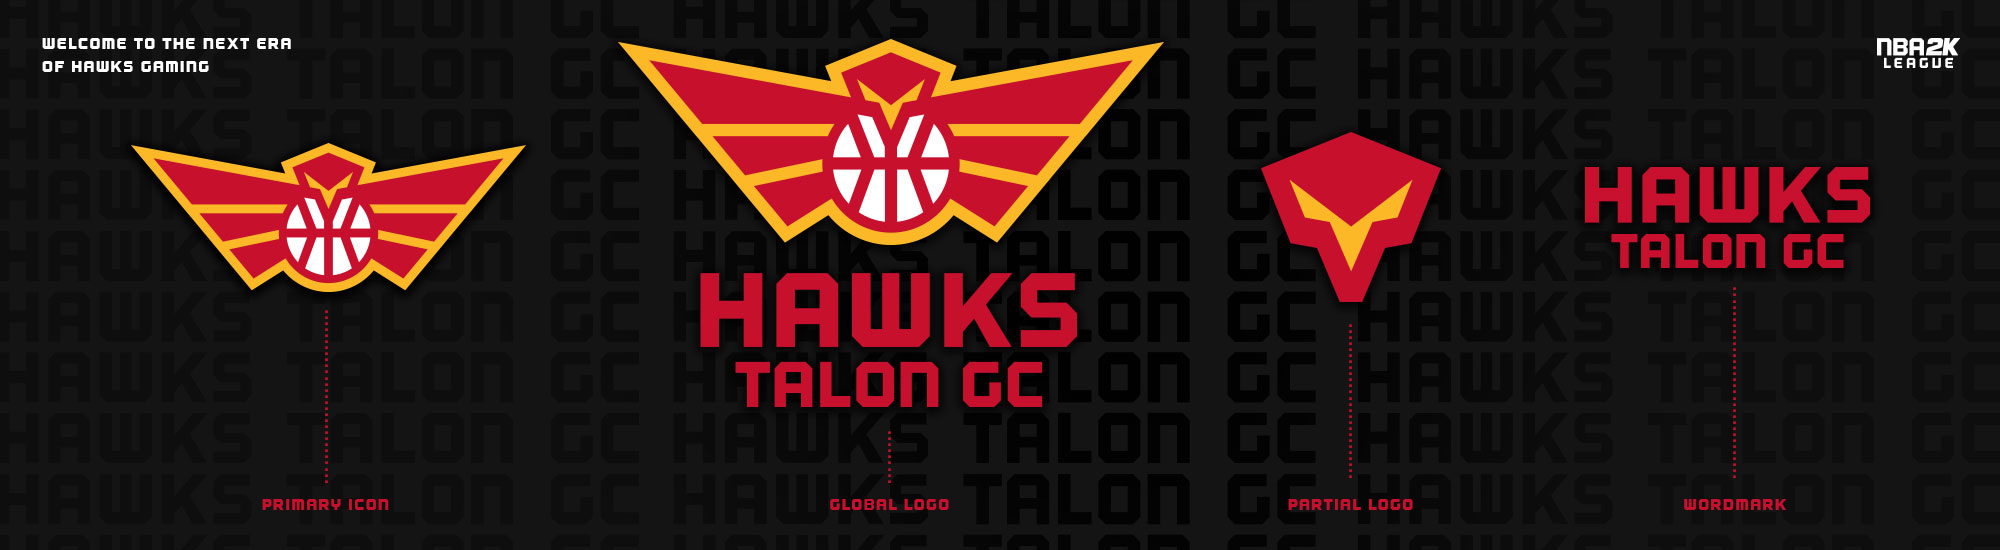 Hawks Talon GC